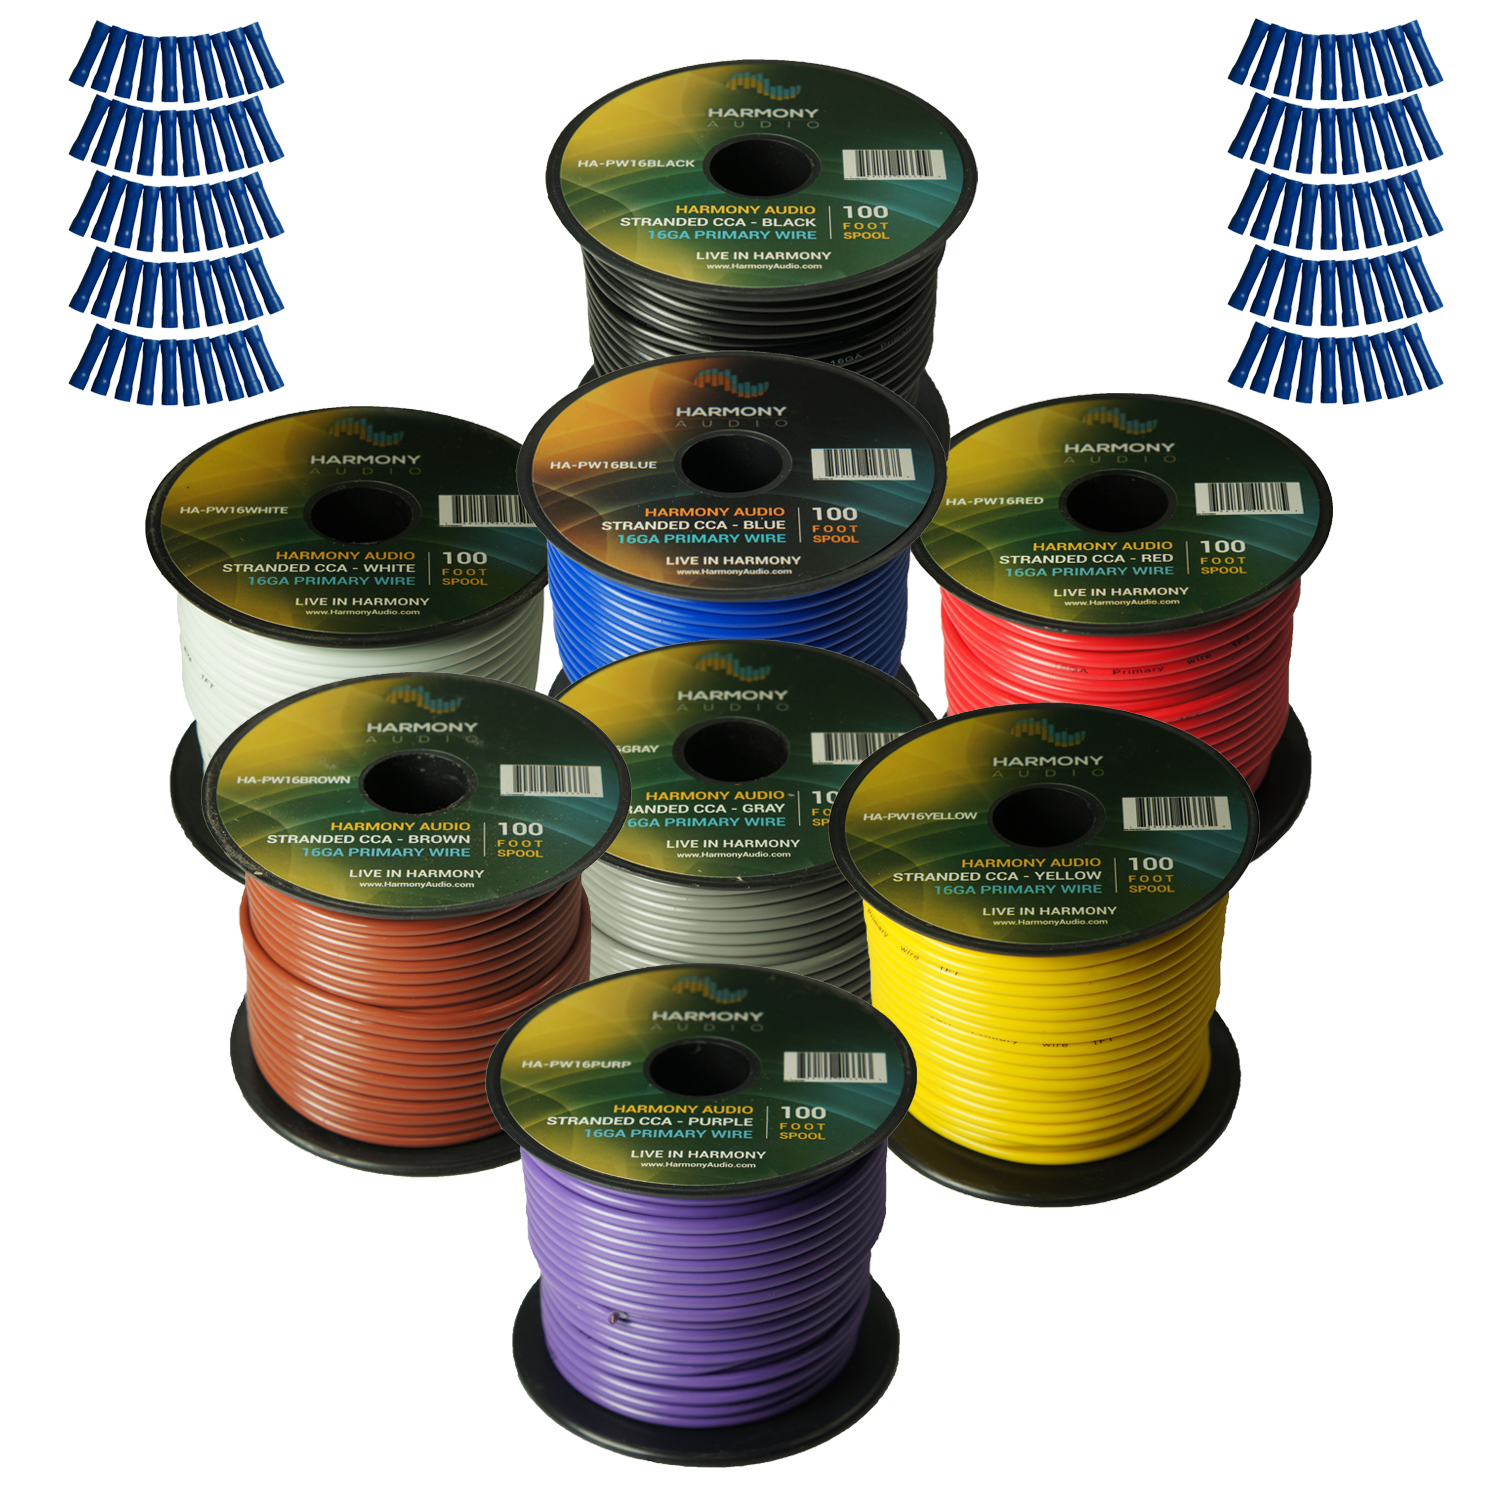 Harmony Audio Primary Single Conductor 16 Gauge Power or Ground Wire - 8 Rolls - 800 Feet - 8 Color Mix for Car Audio / Trailer / Model Train / Remote